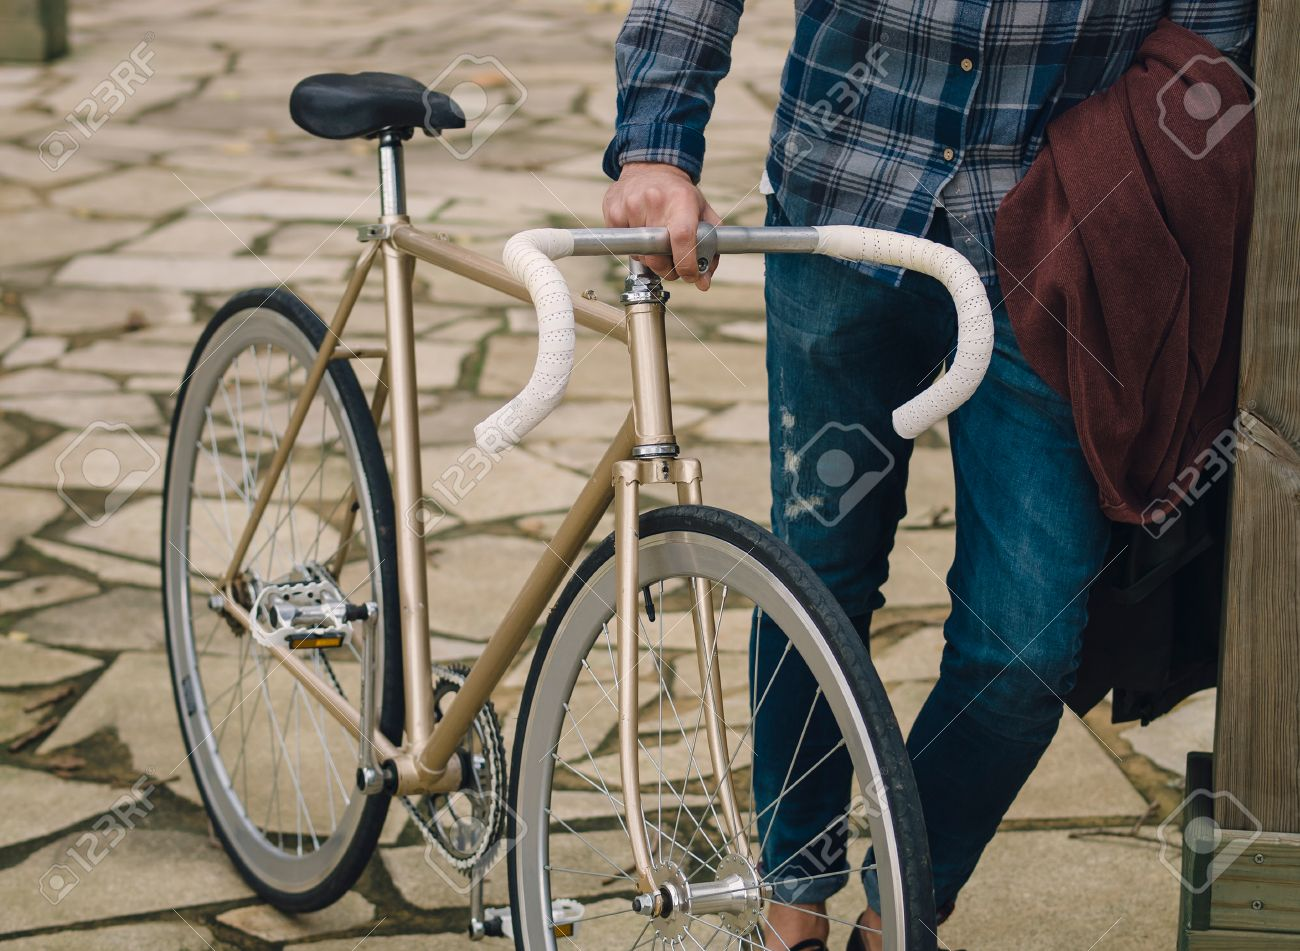 Fixie Bike Detail And Hipster Outdoors Stock Photo Picture And